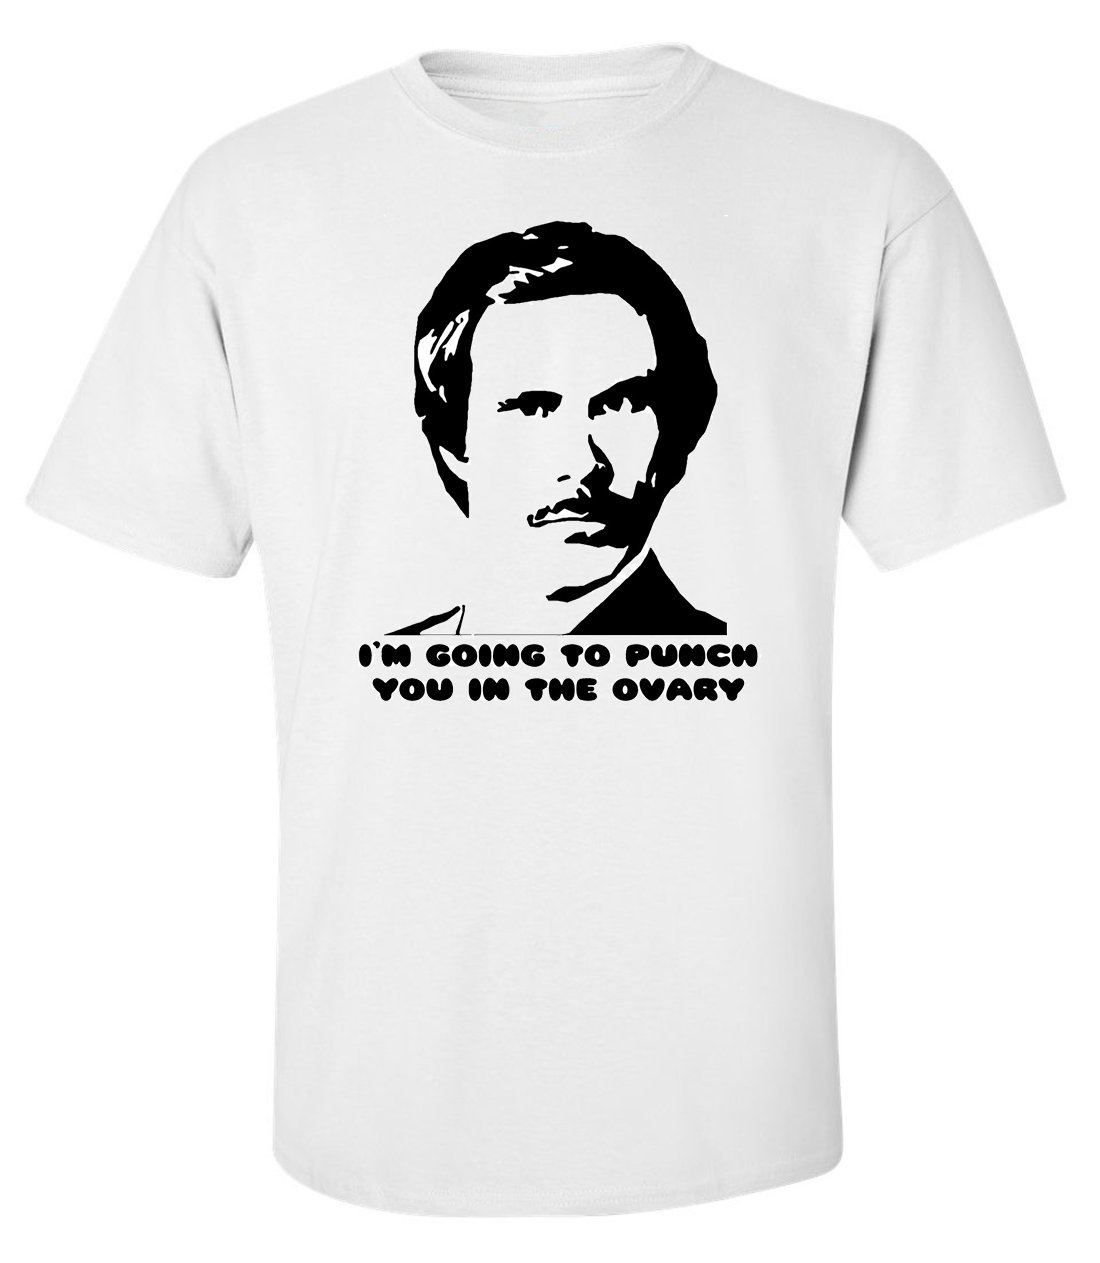 Anchorman stencil funny portrait slogan men printed white t-shirt size L